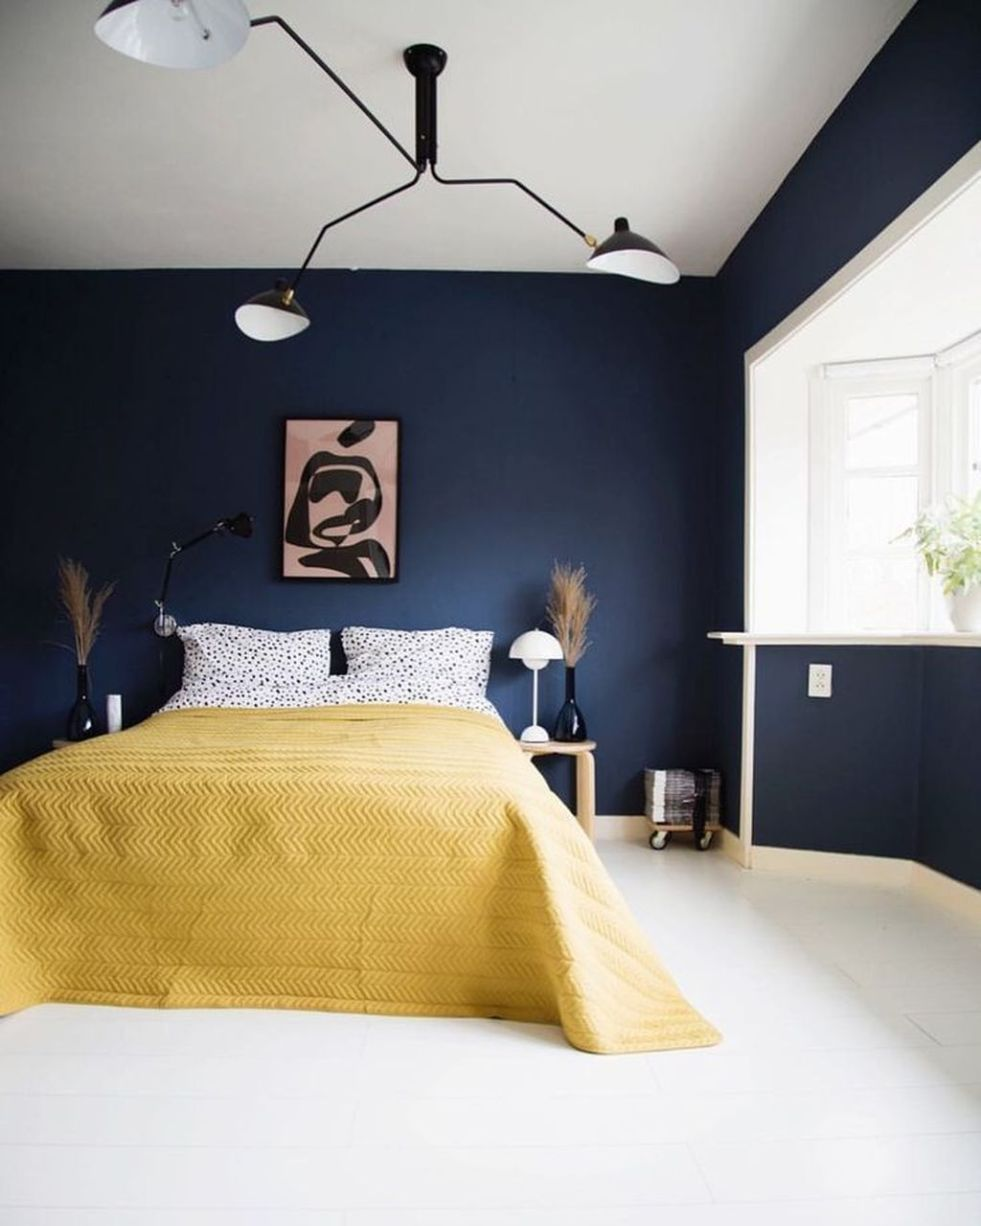 bedroom, white floor, dark blue wall, modern pendant, window, yellow bedding, wooden side table